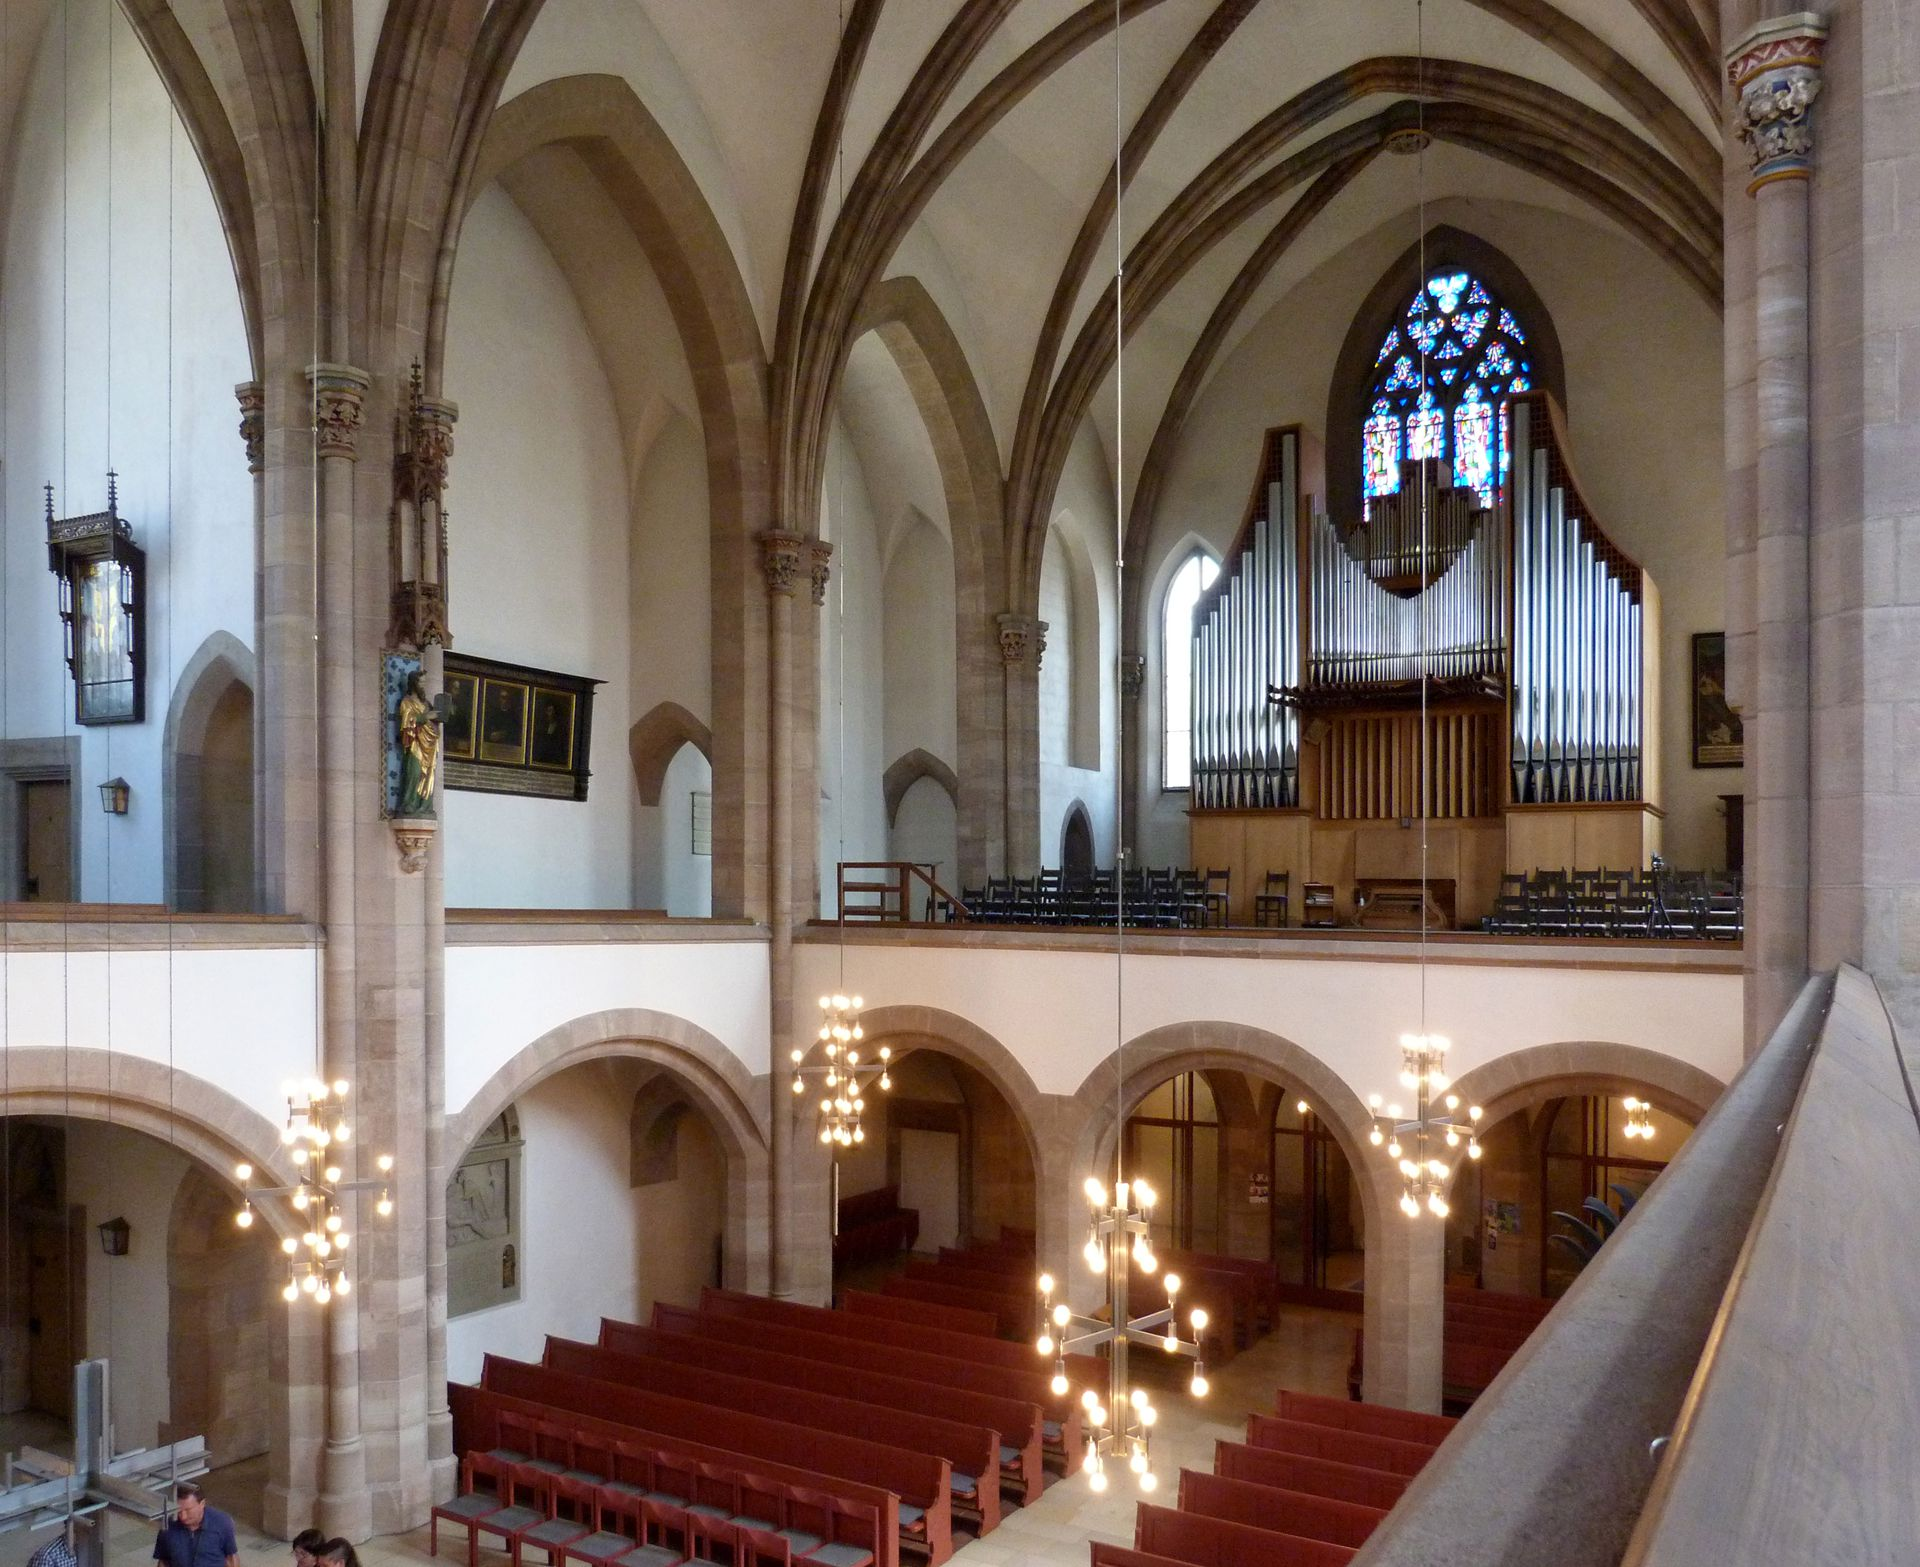 St. Peter Church Interior, view to the organ loft